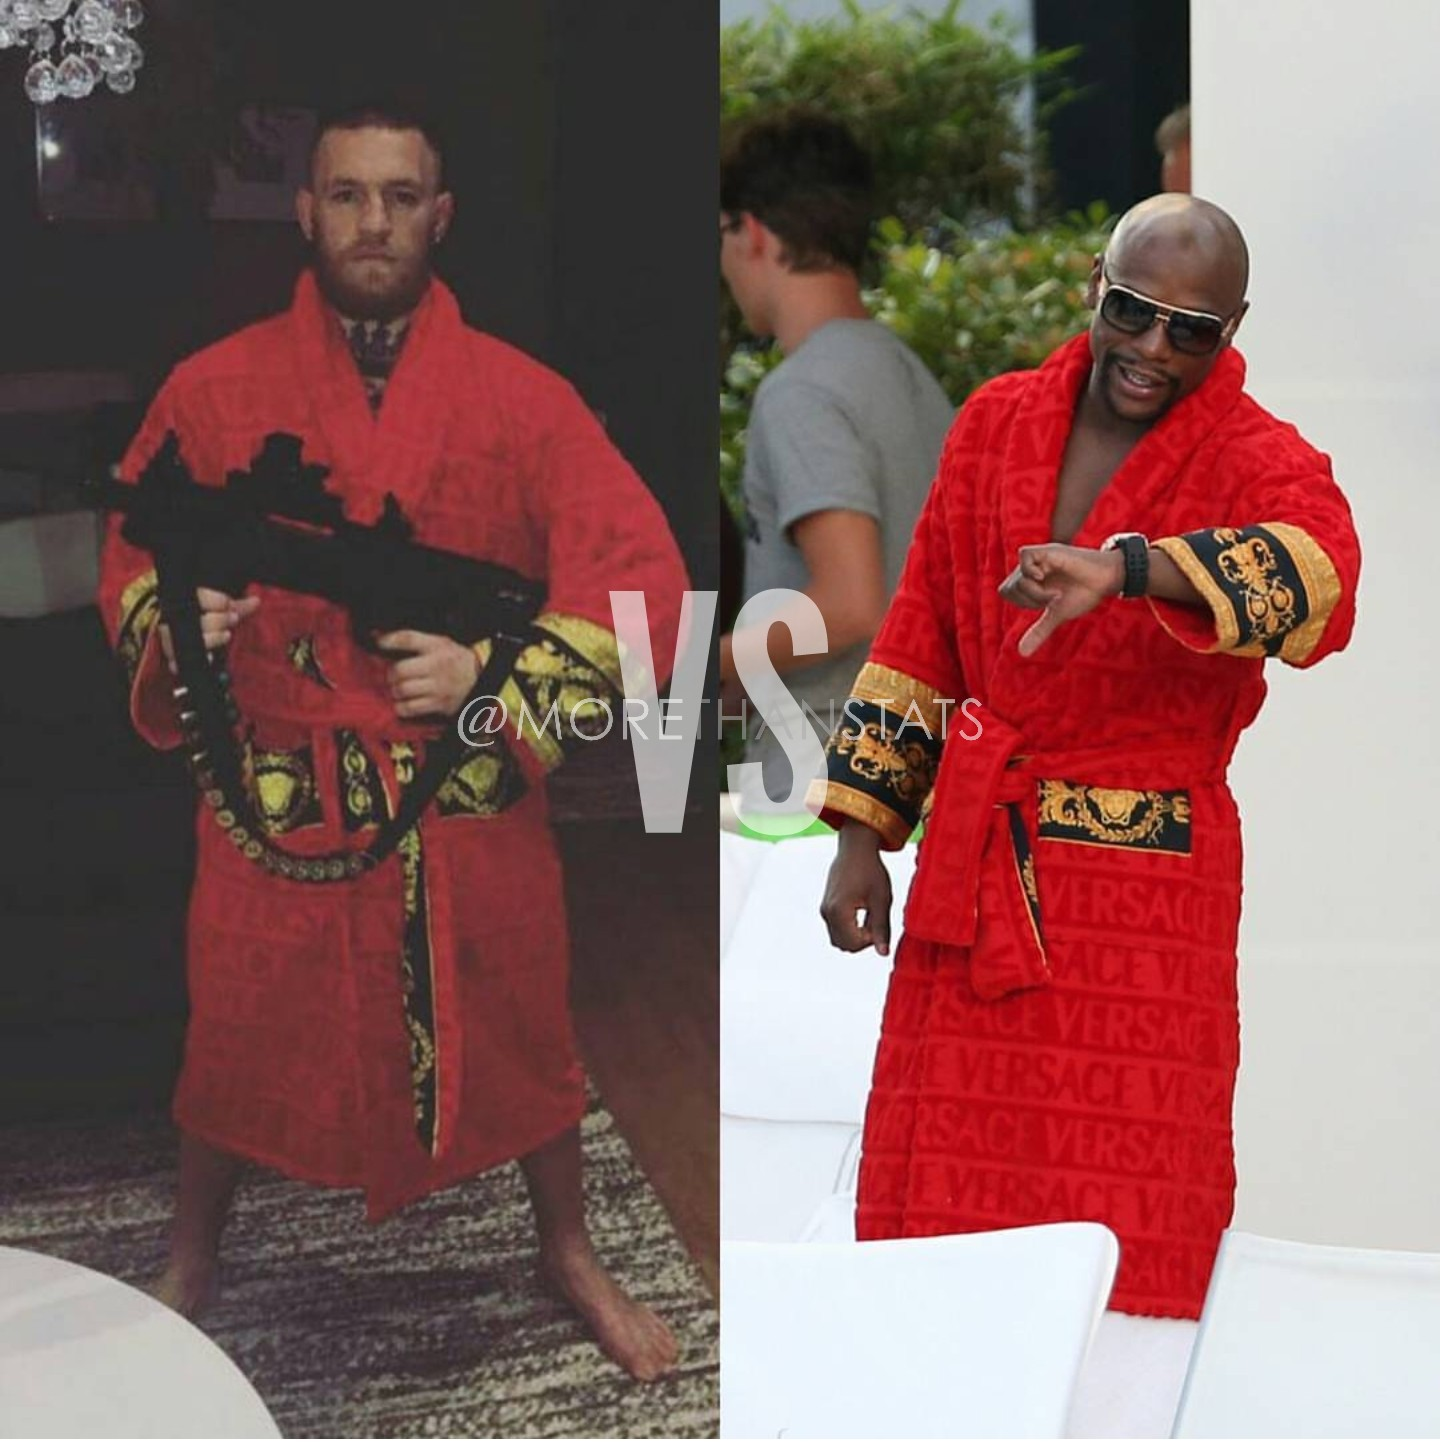 Conor McGregor VS. Floyd Mayweather: Who's Winning The Style Battle?